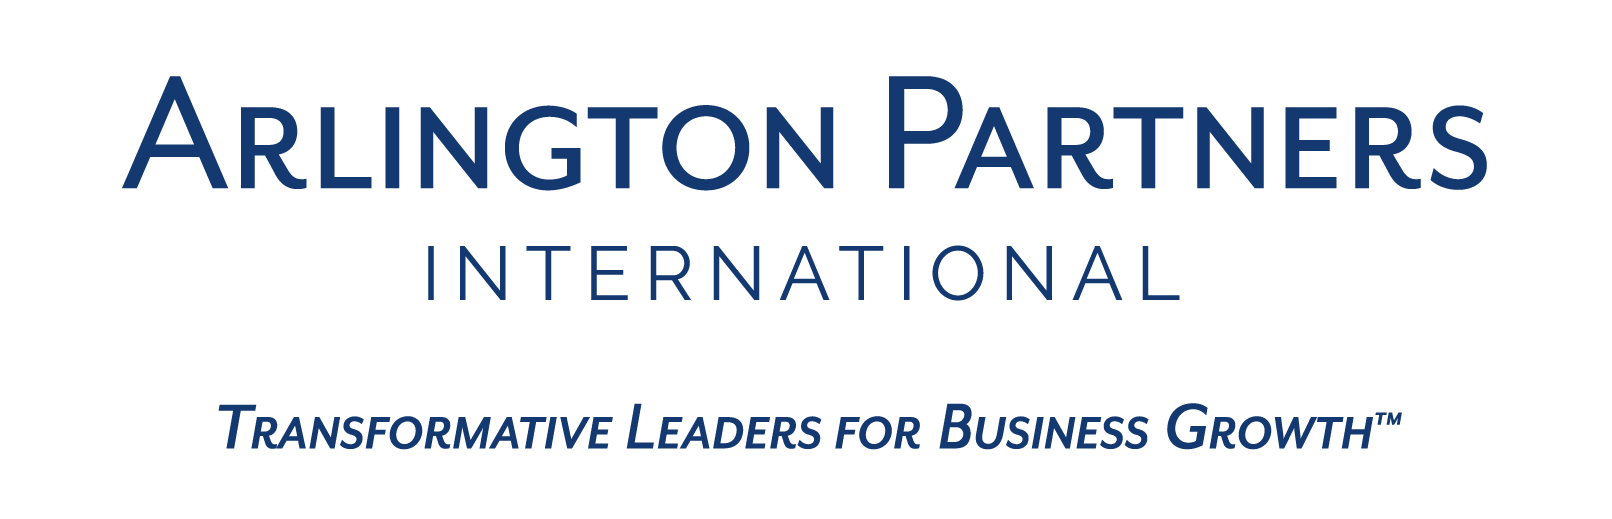 Arlington Partners International